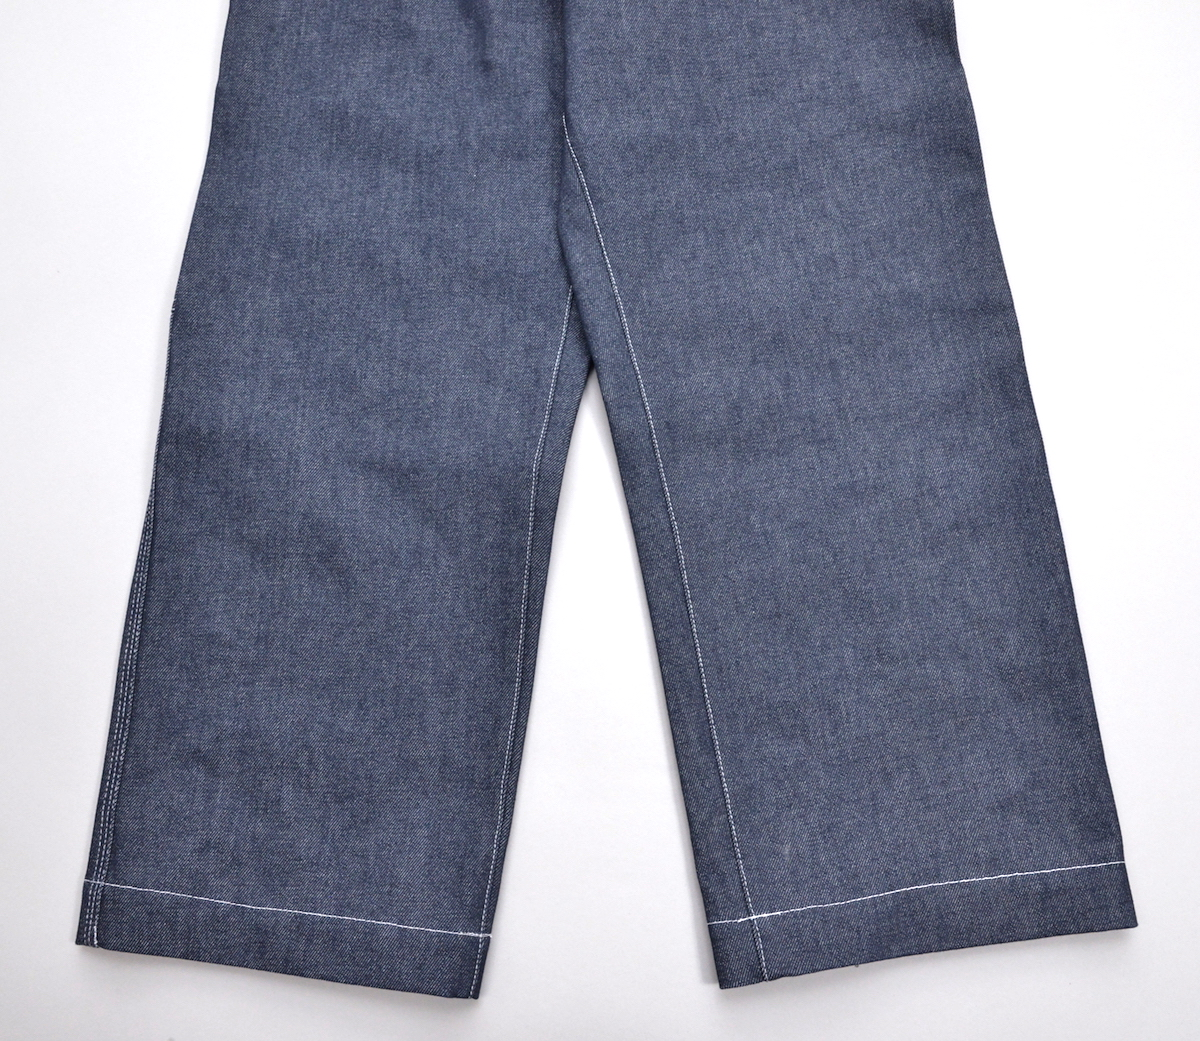 CAMIEL FORTGENS 「 10.05.06 WORKER DENIM PANTS 」